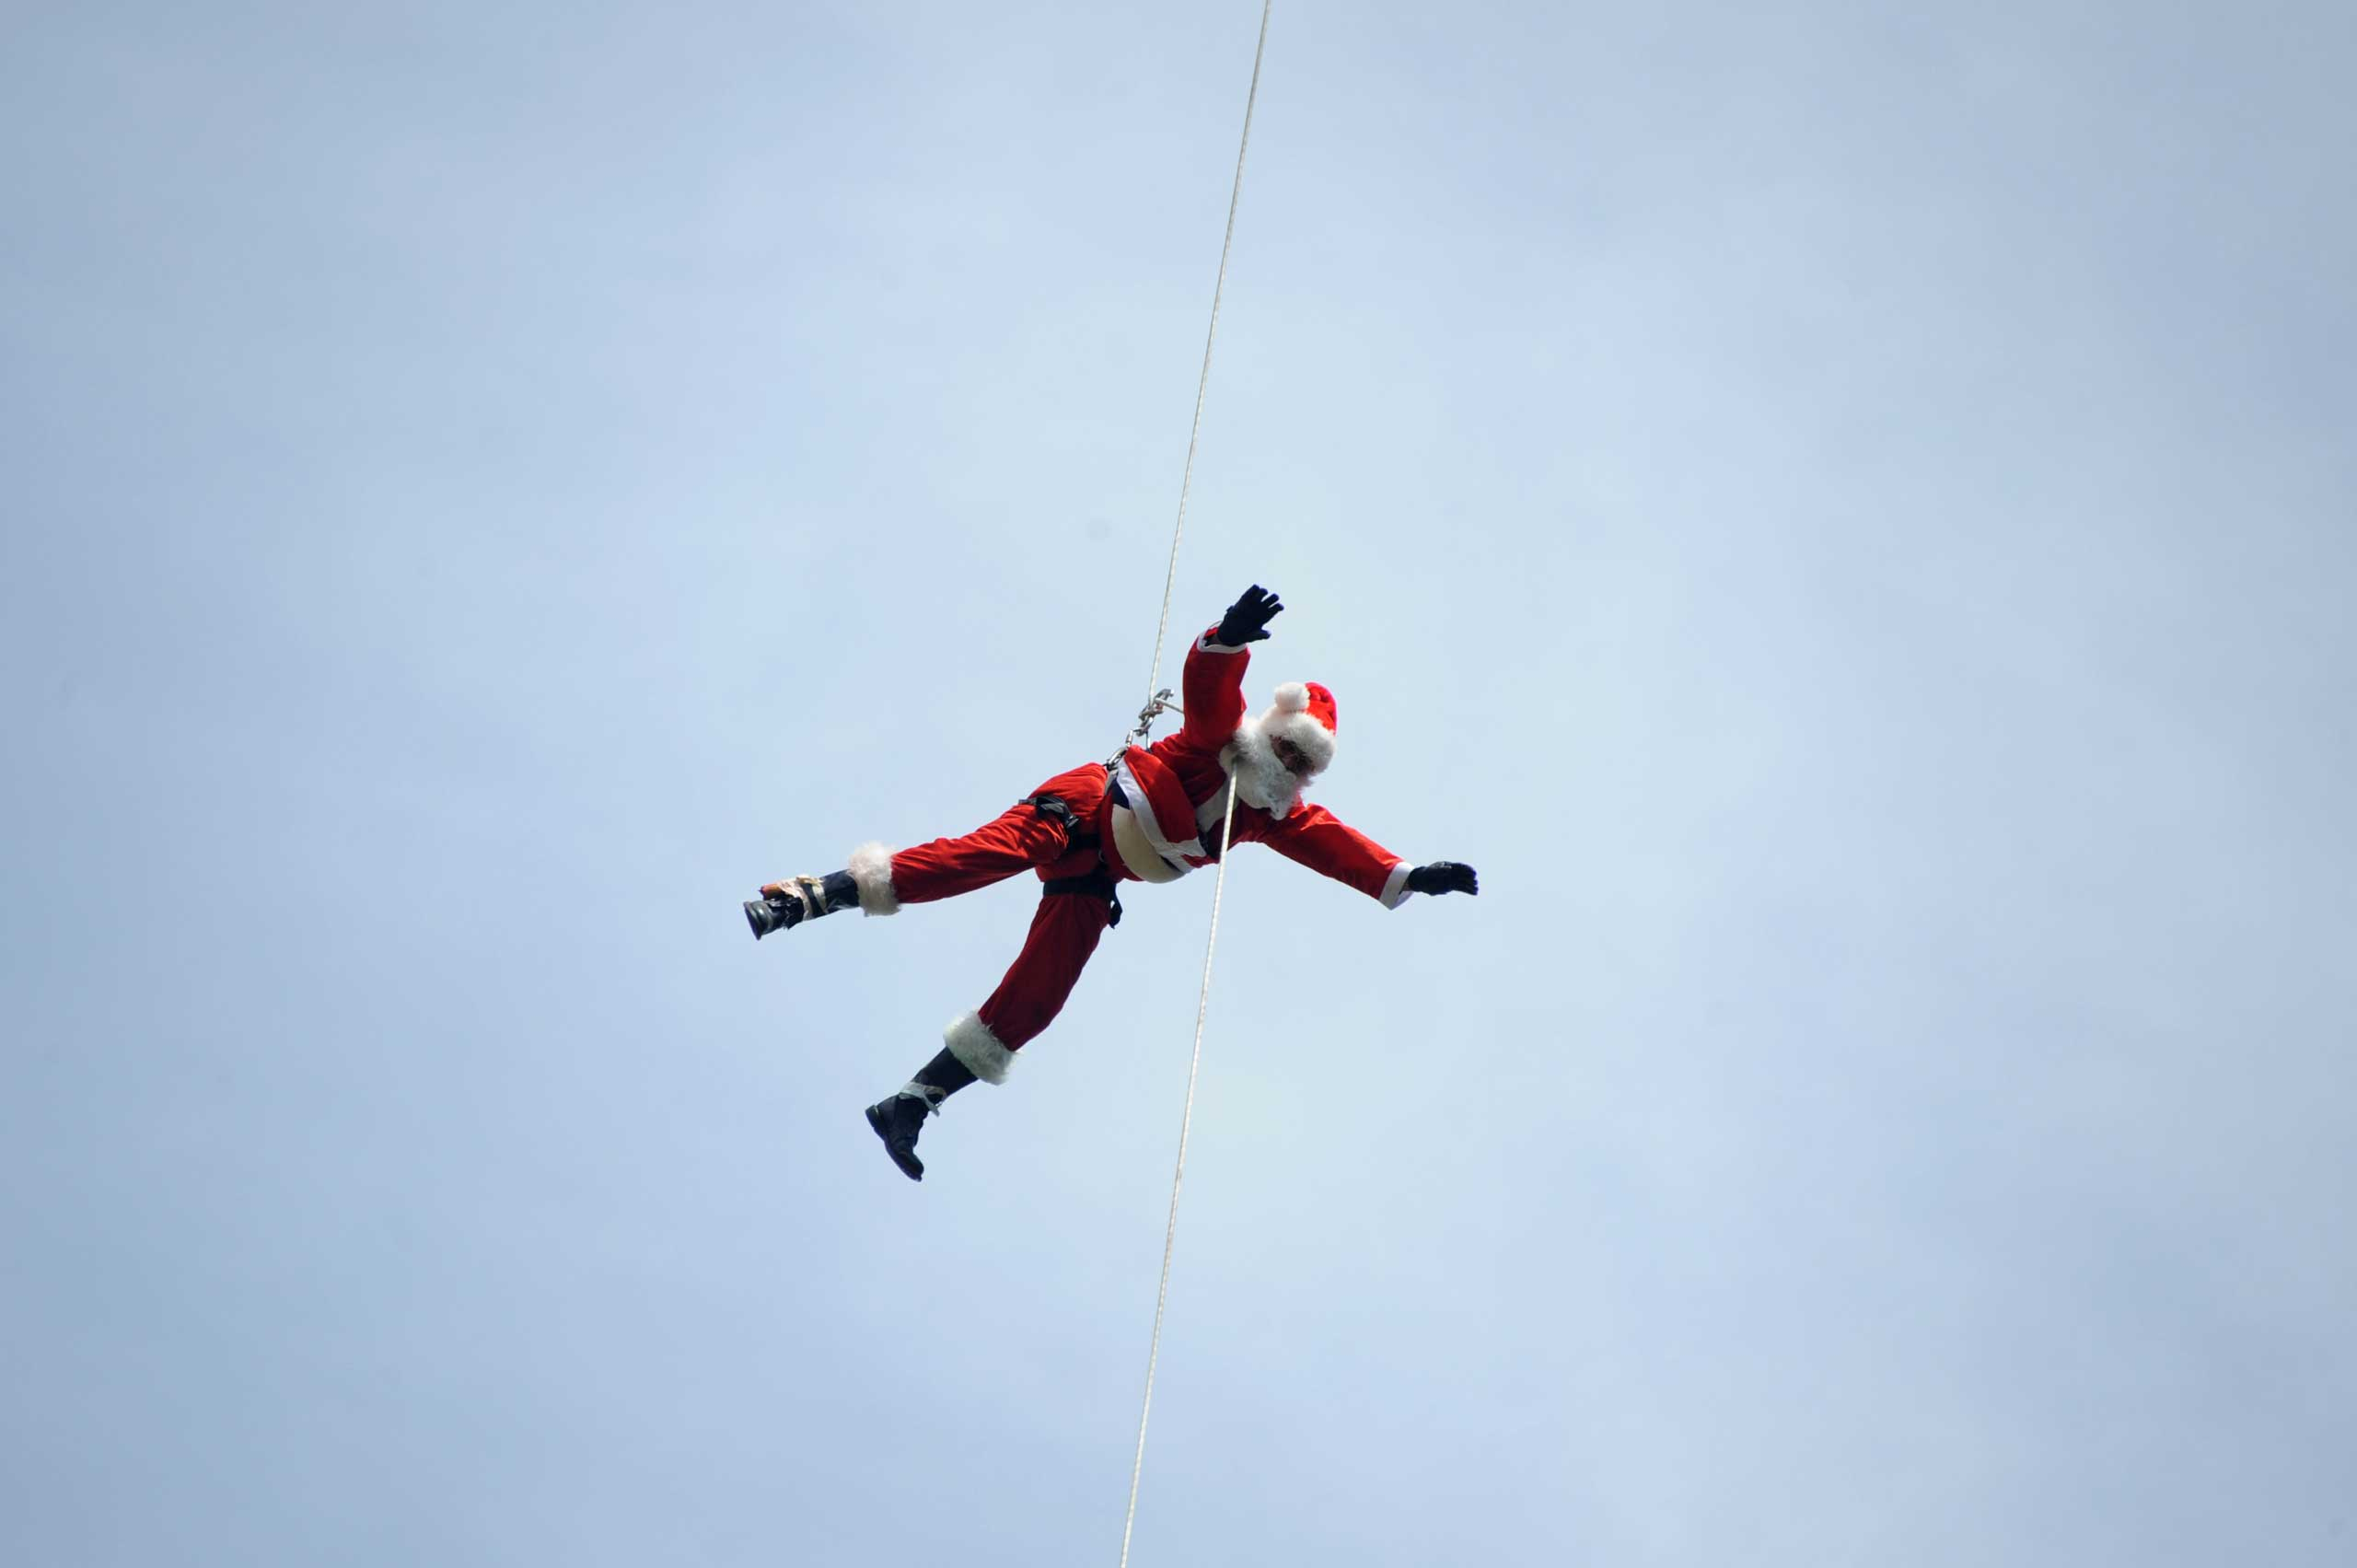 Guatemalan firefighter Hector Chacon dressed as Santa Claus goes down a cable from a bridge to deliver presents to children in Guatemala City on Dec. 21, 2014.